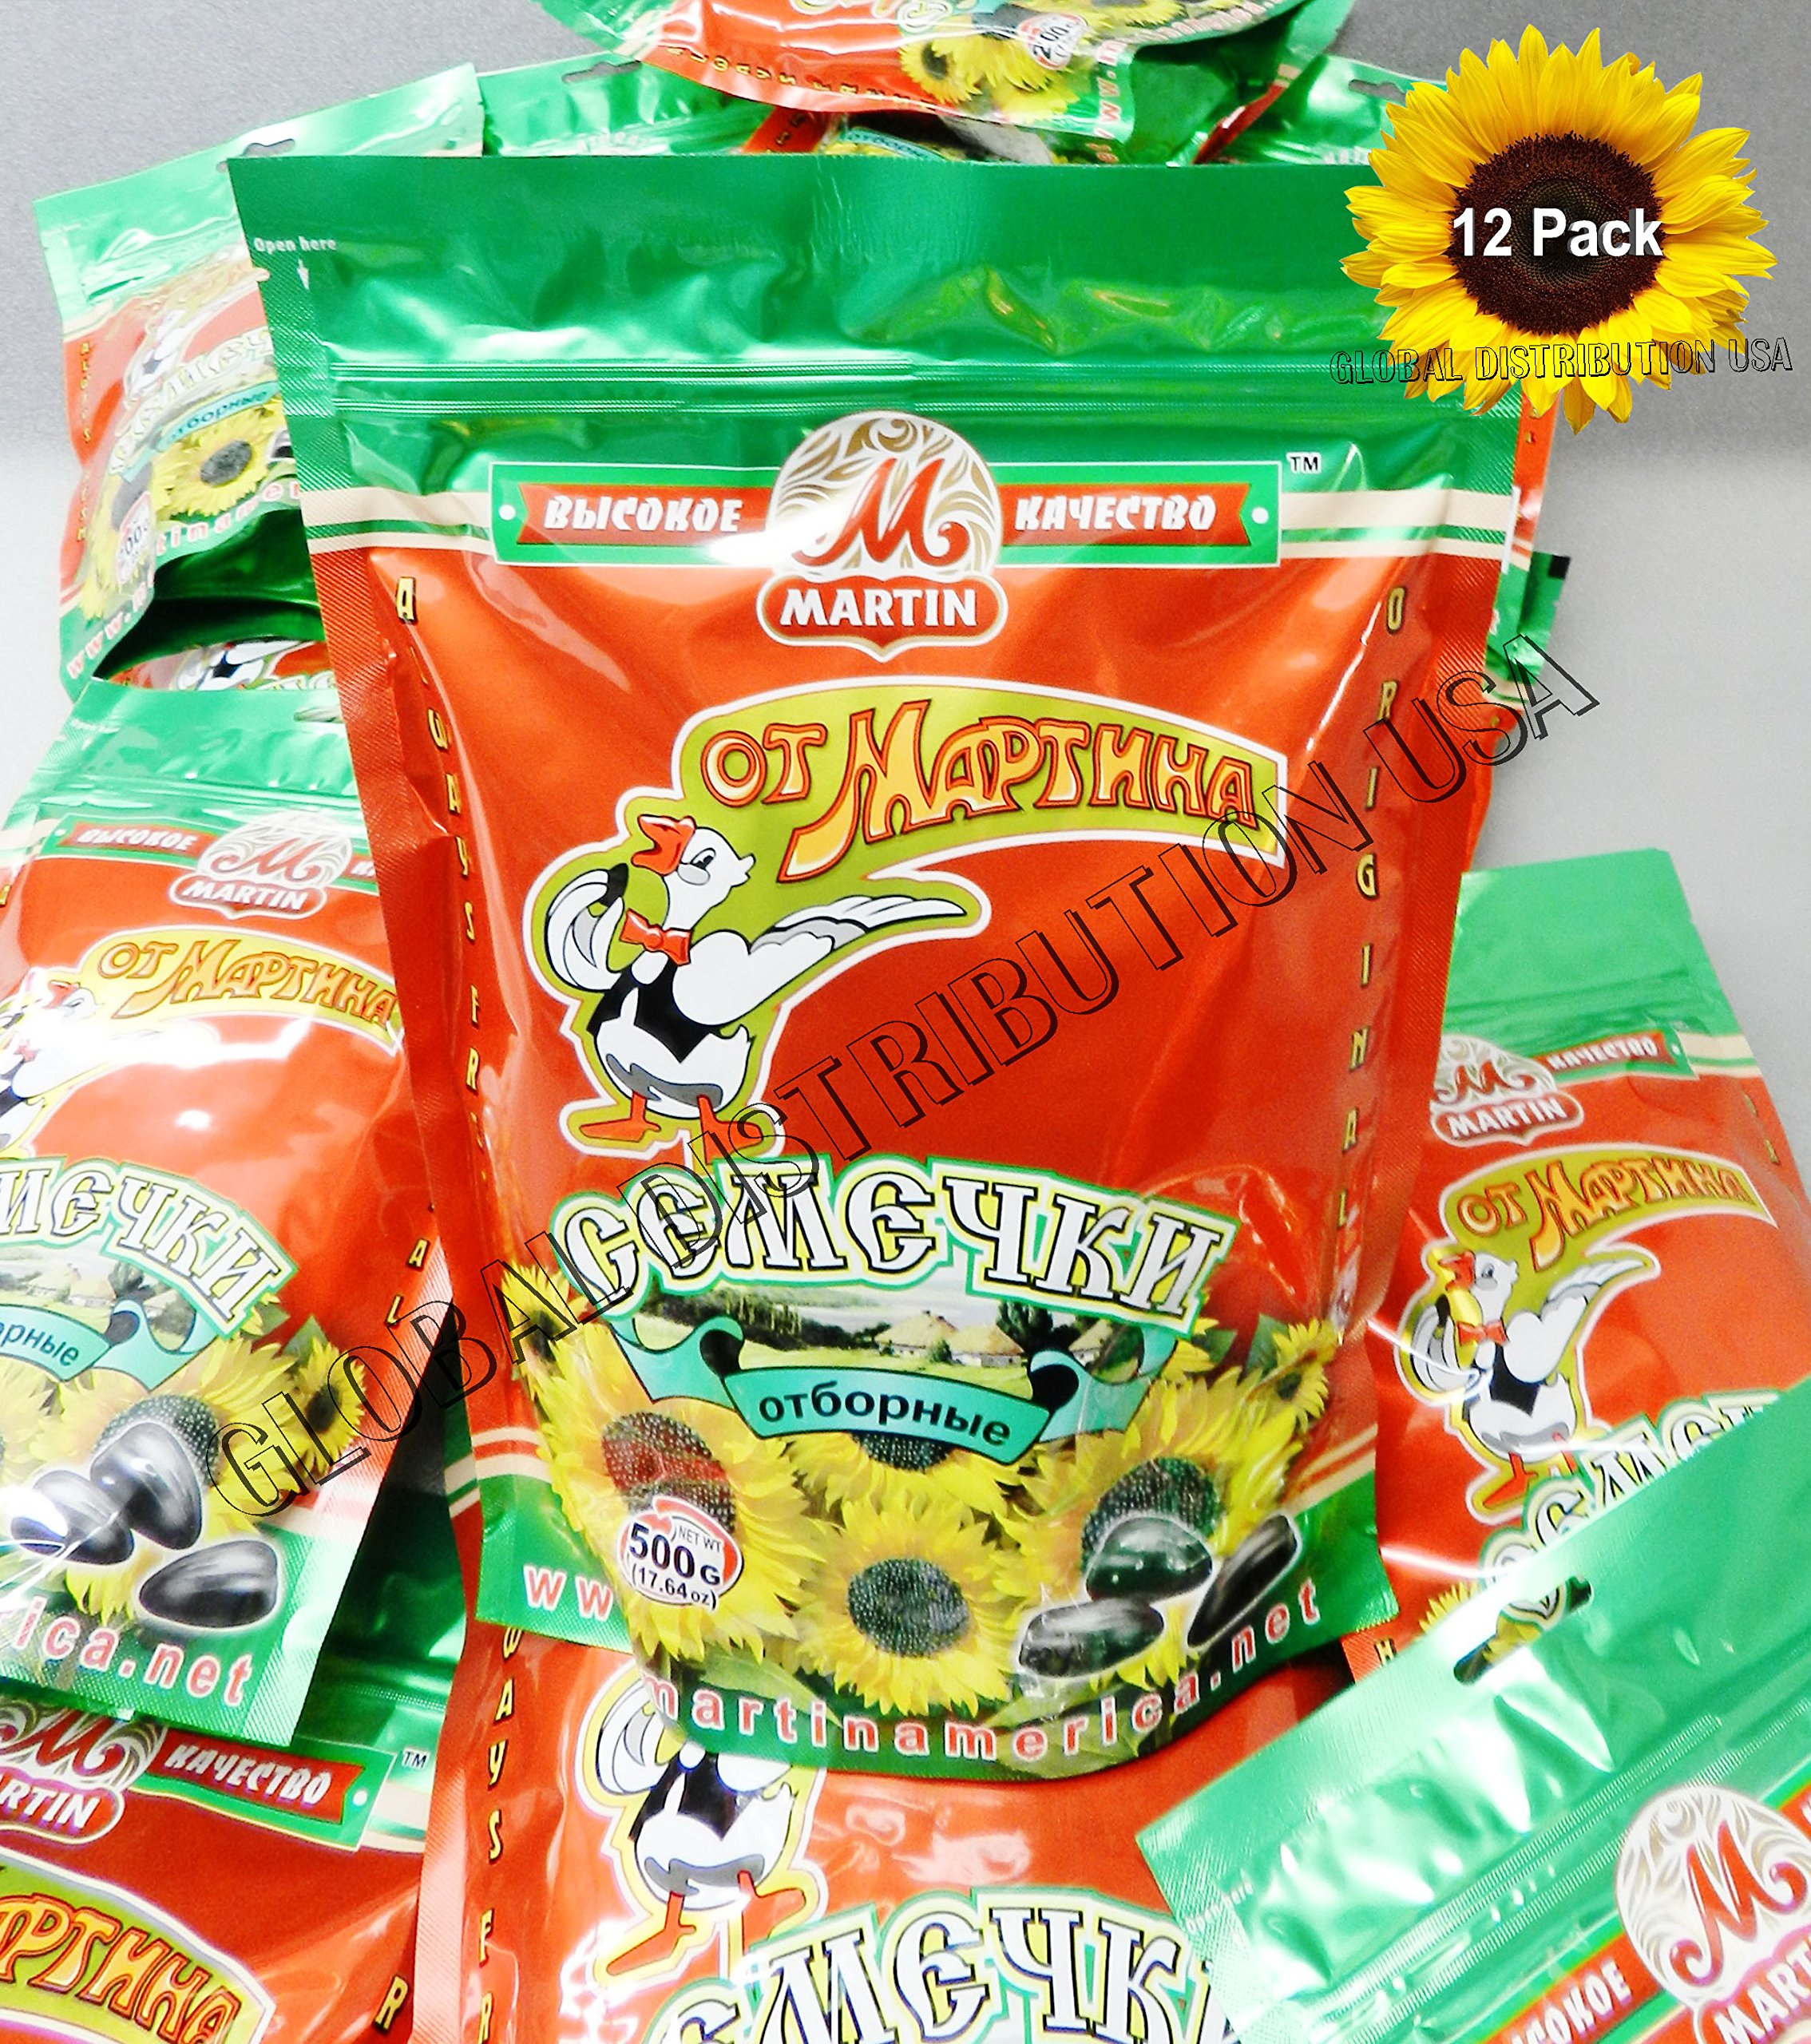 Premium Roasted Sunflower Seeds by Mr.Martin (Ot Martina) Unsalted Non-GMO 500G Pack of 12 by Mr.Martin